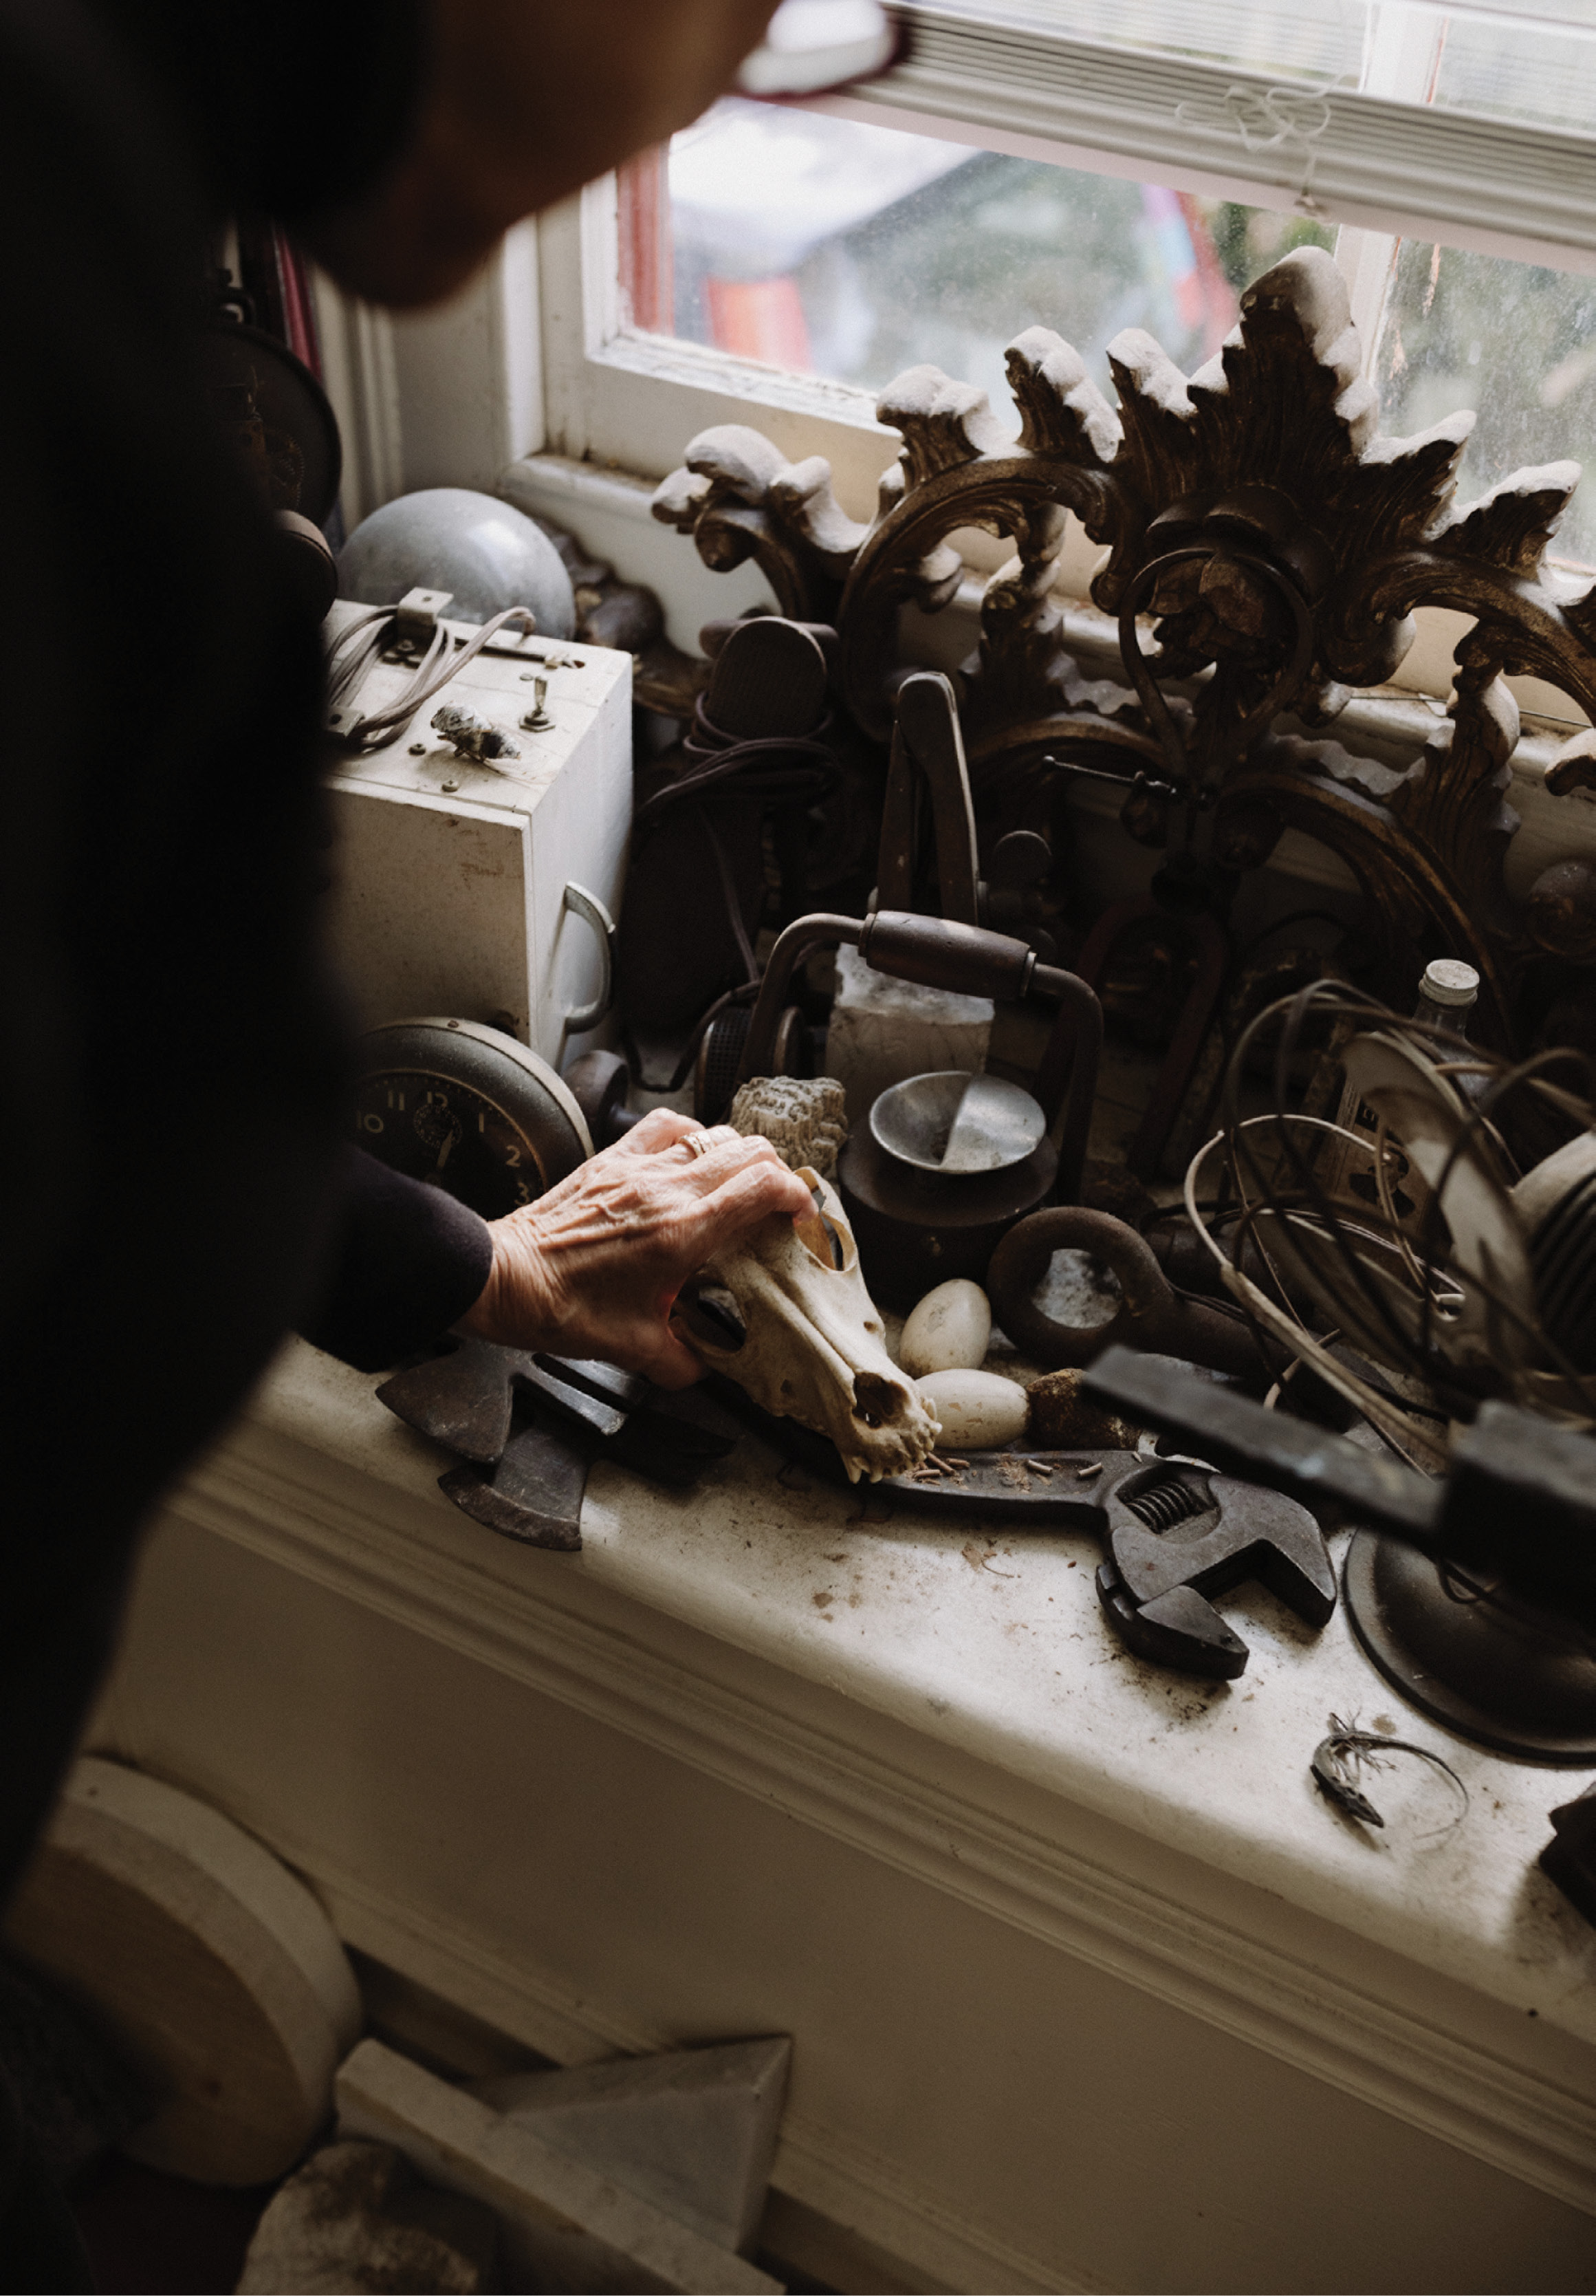 All manner of art and artifacts inspire Fantuzzo.